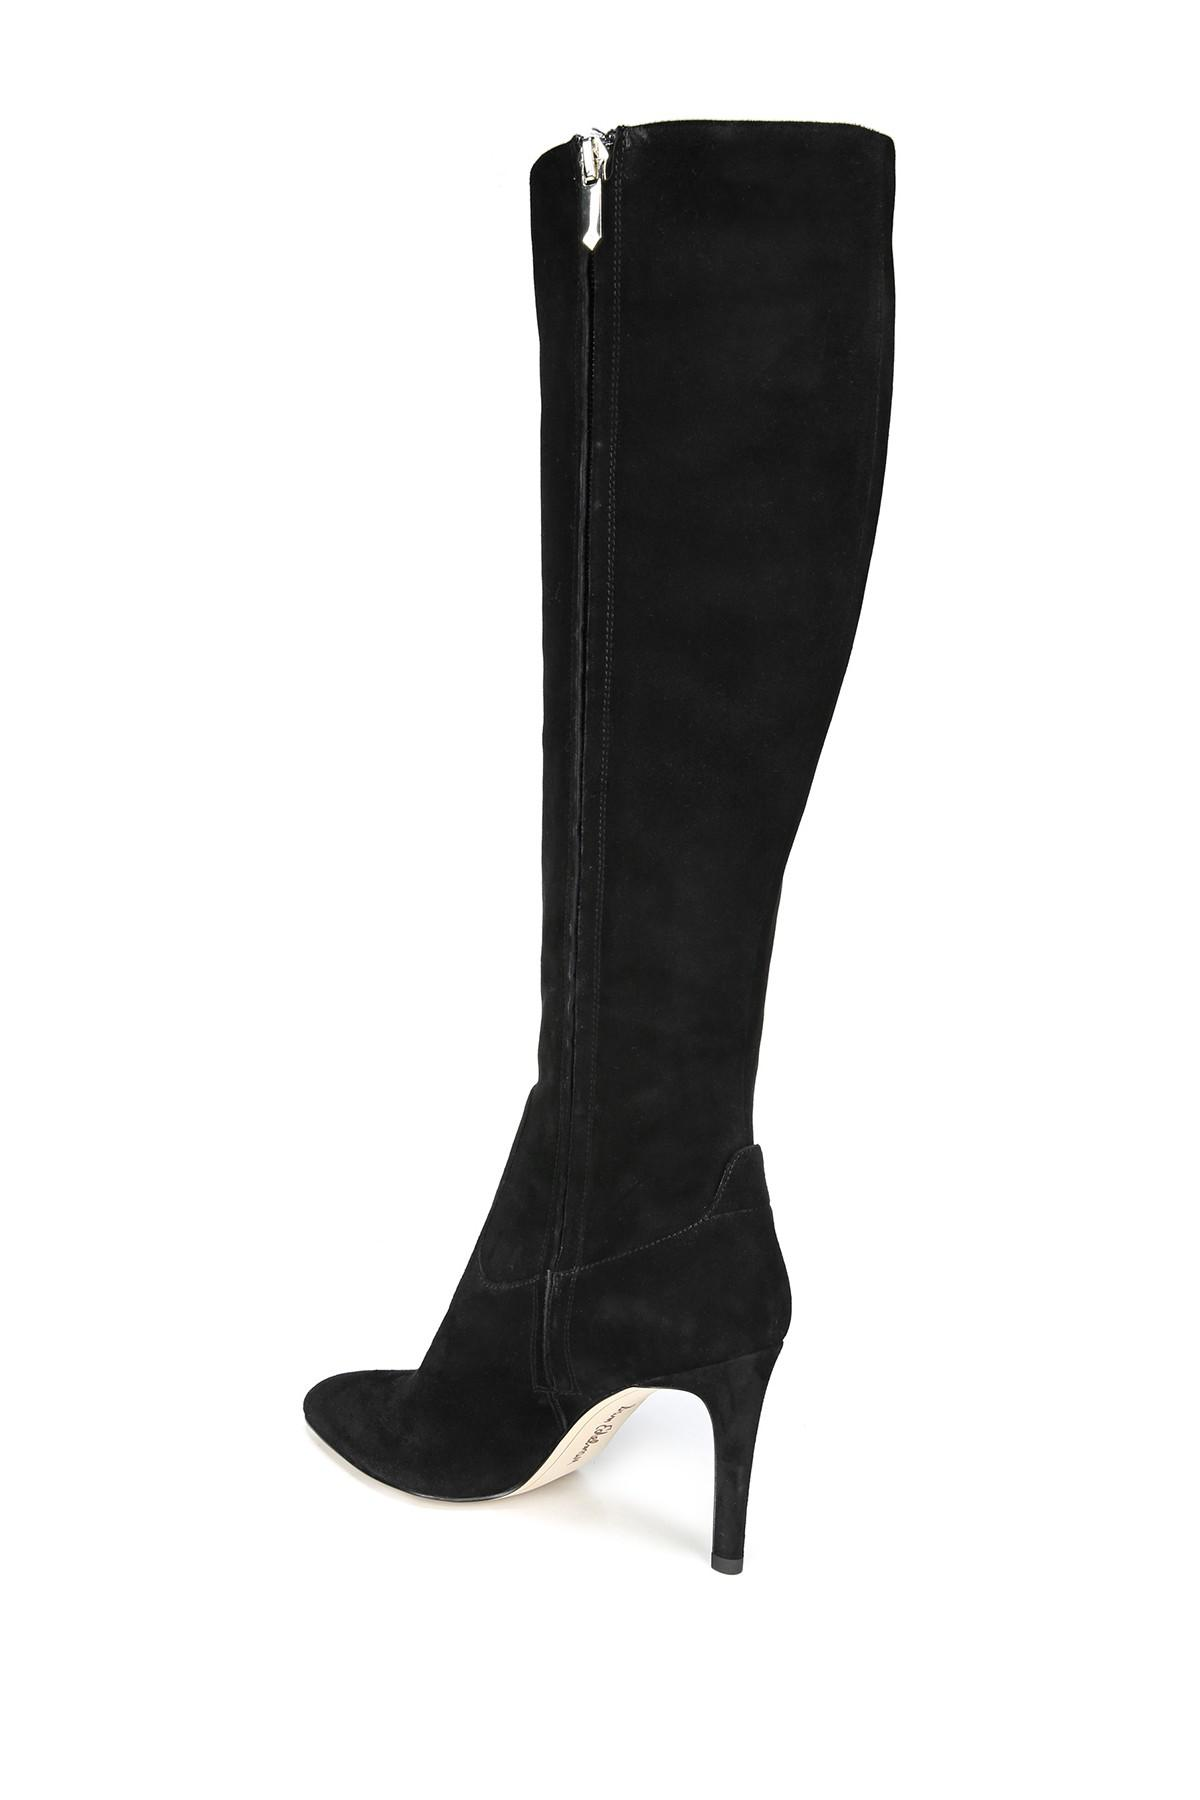 fab228d1c02 Sam Edelman - Black Olencia Suede Leather Knee High Boot - Lyst. View  fullscreen